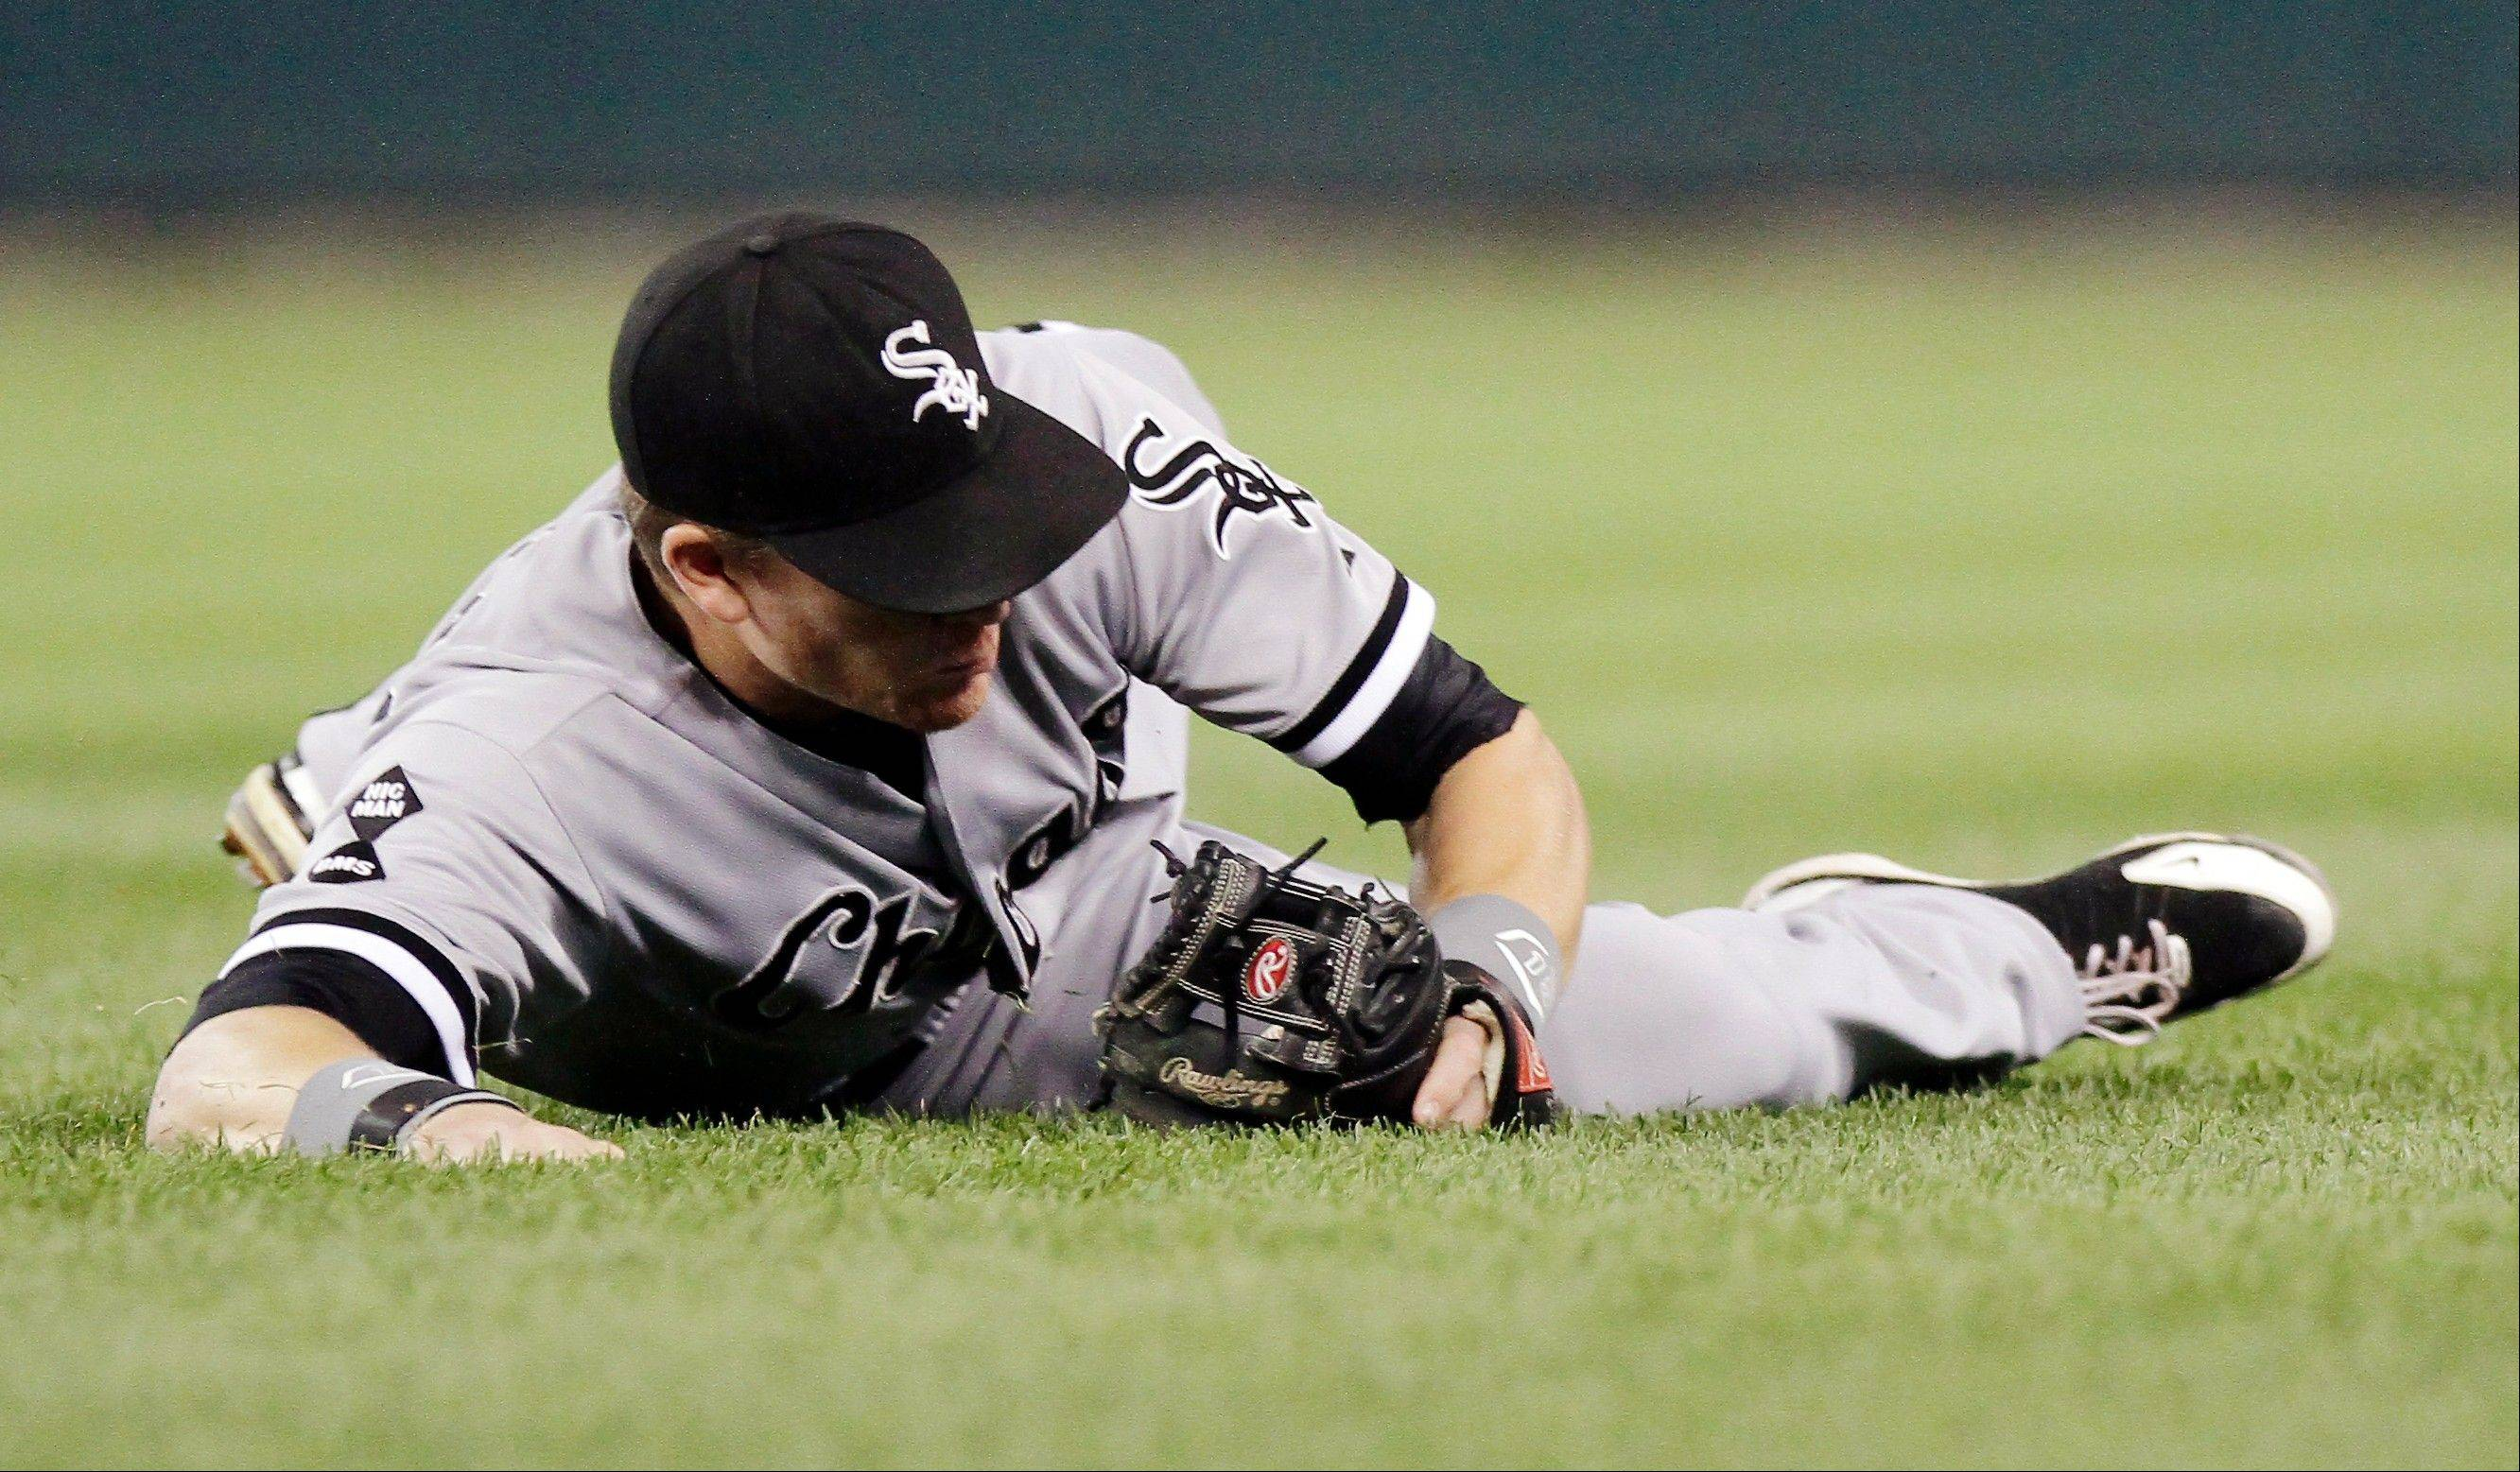 White Sox second baseman Gordon Beckham smothers a ground ball hit by Detroit Tigers' Prince Fielder to throw him out at first base in the sixth inning of a baseball game Saturday in Detroit.